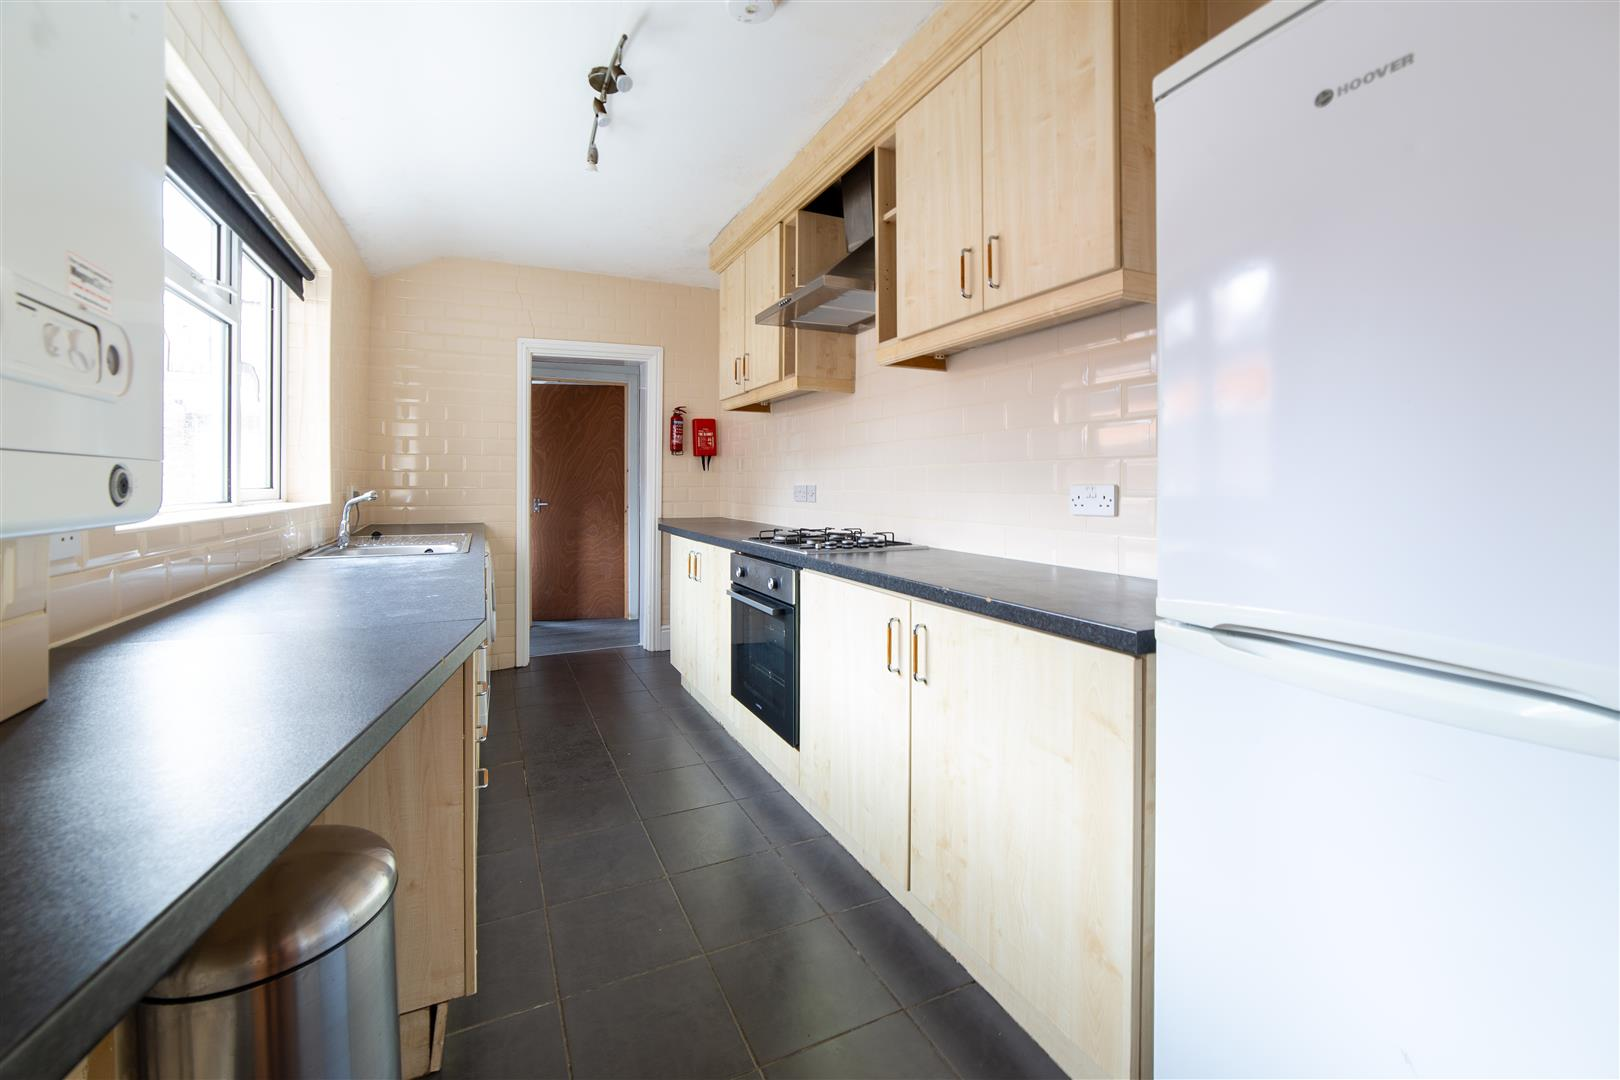 5 bed terraced house to rent in Newcastle Upon Tyne, NE6 5SN  - Property Image 2